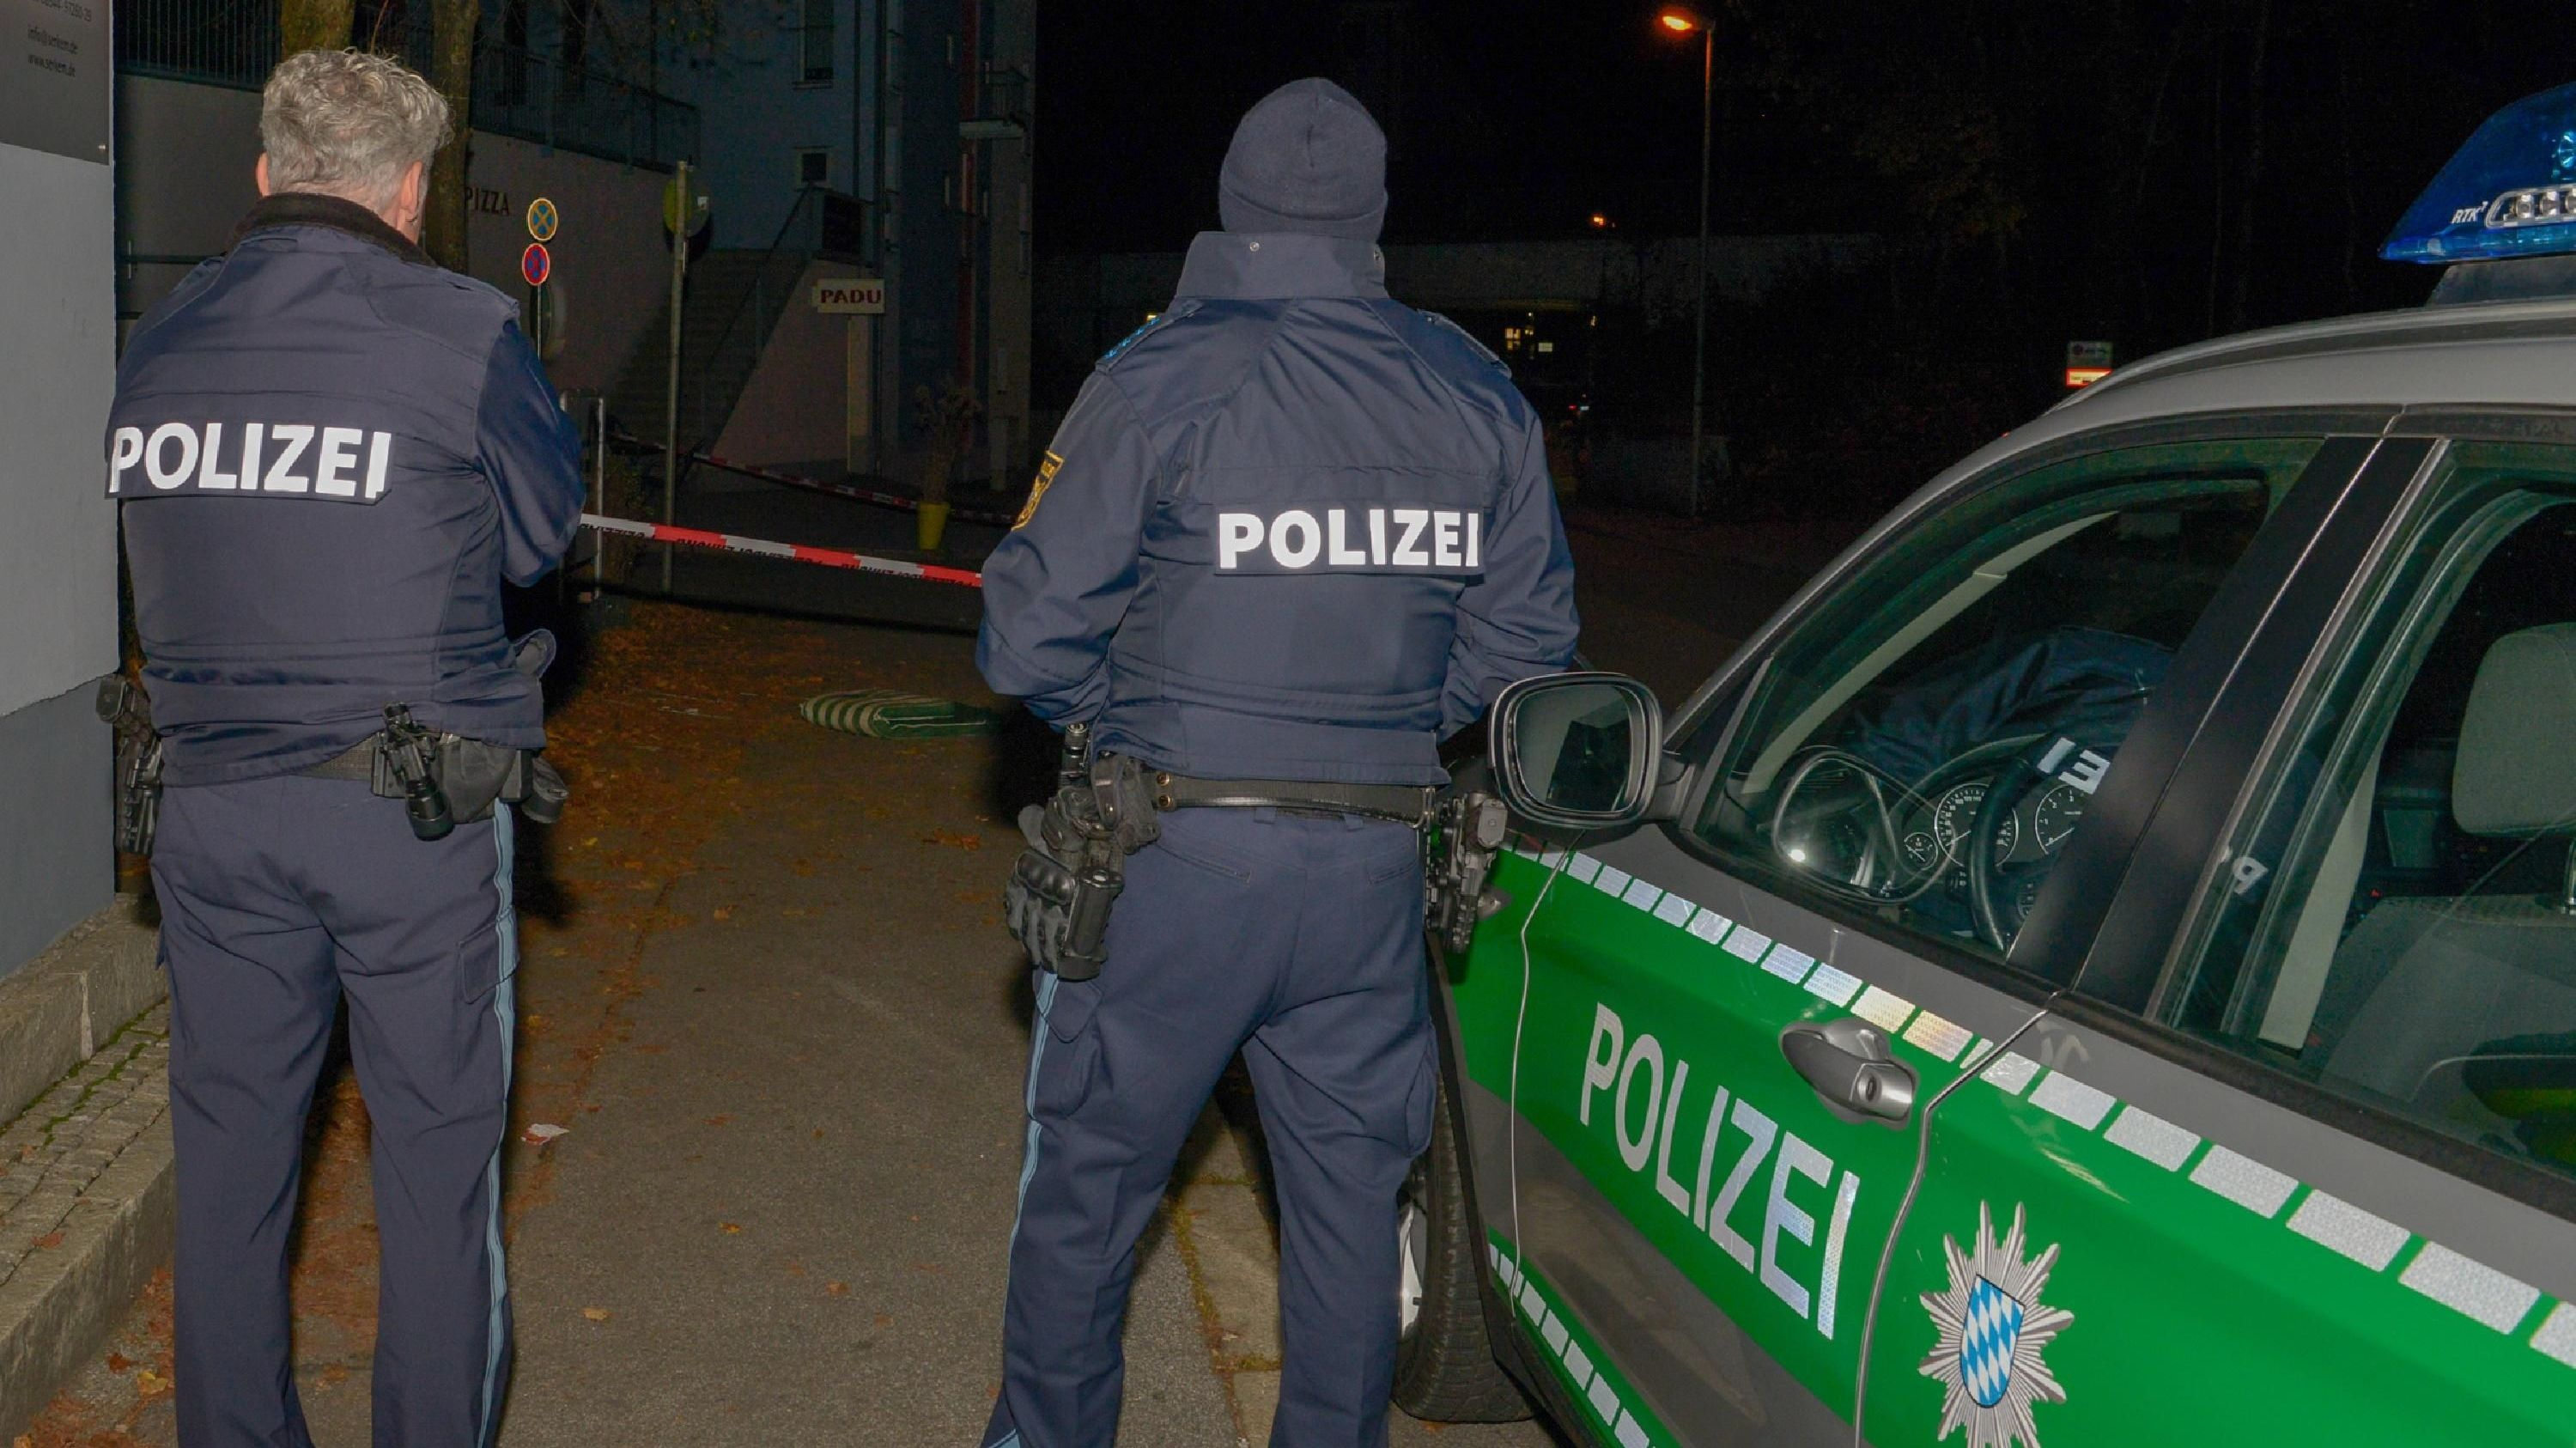 Polizisten am Tatort in Passau